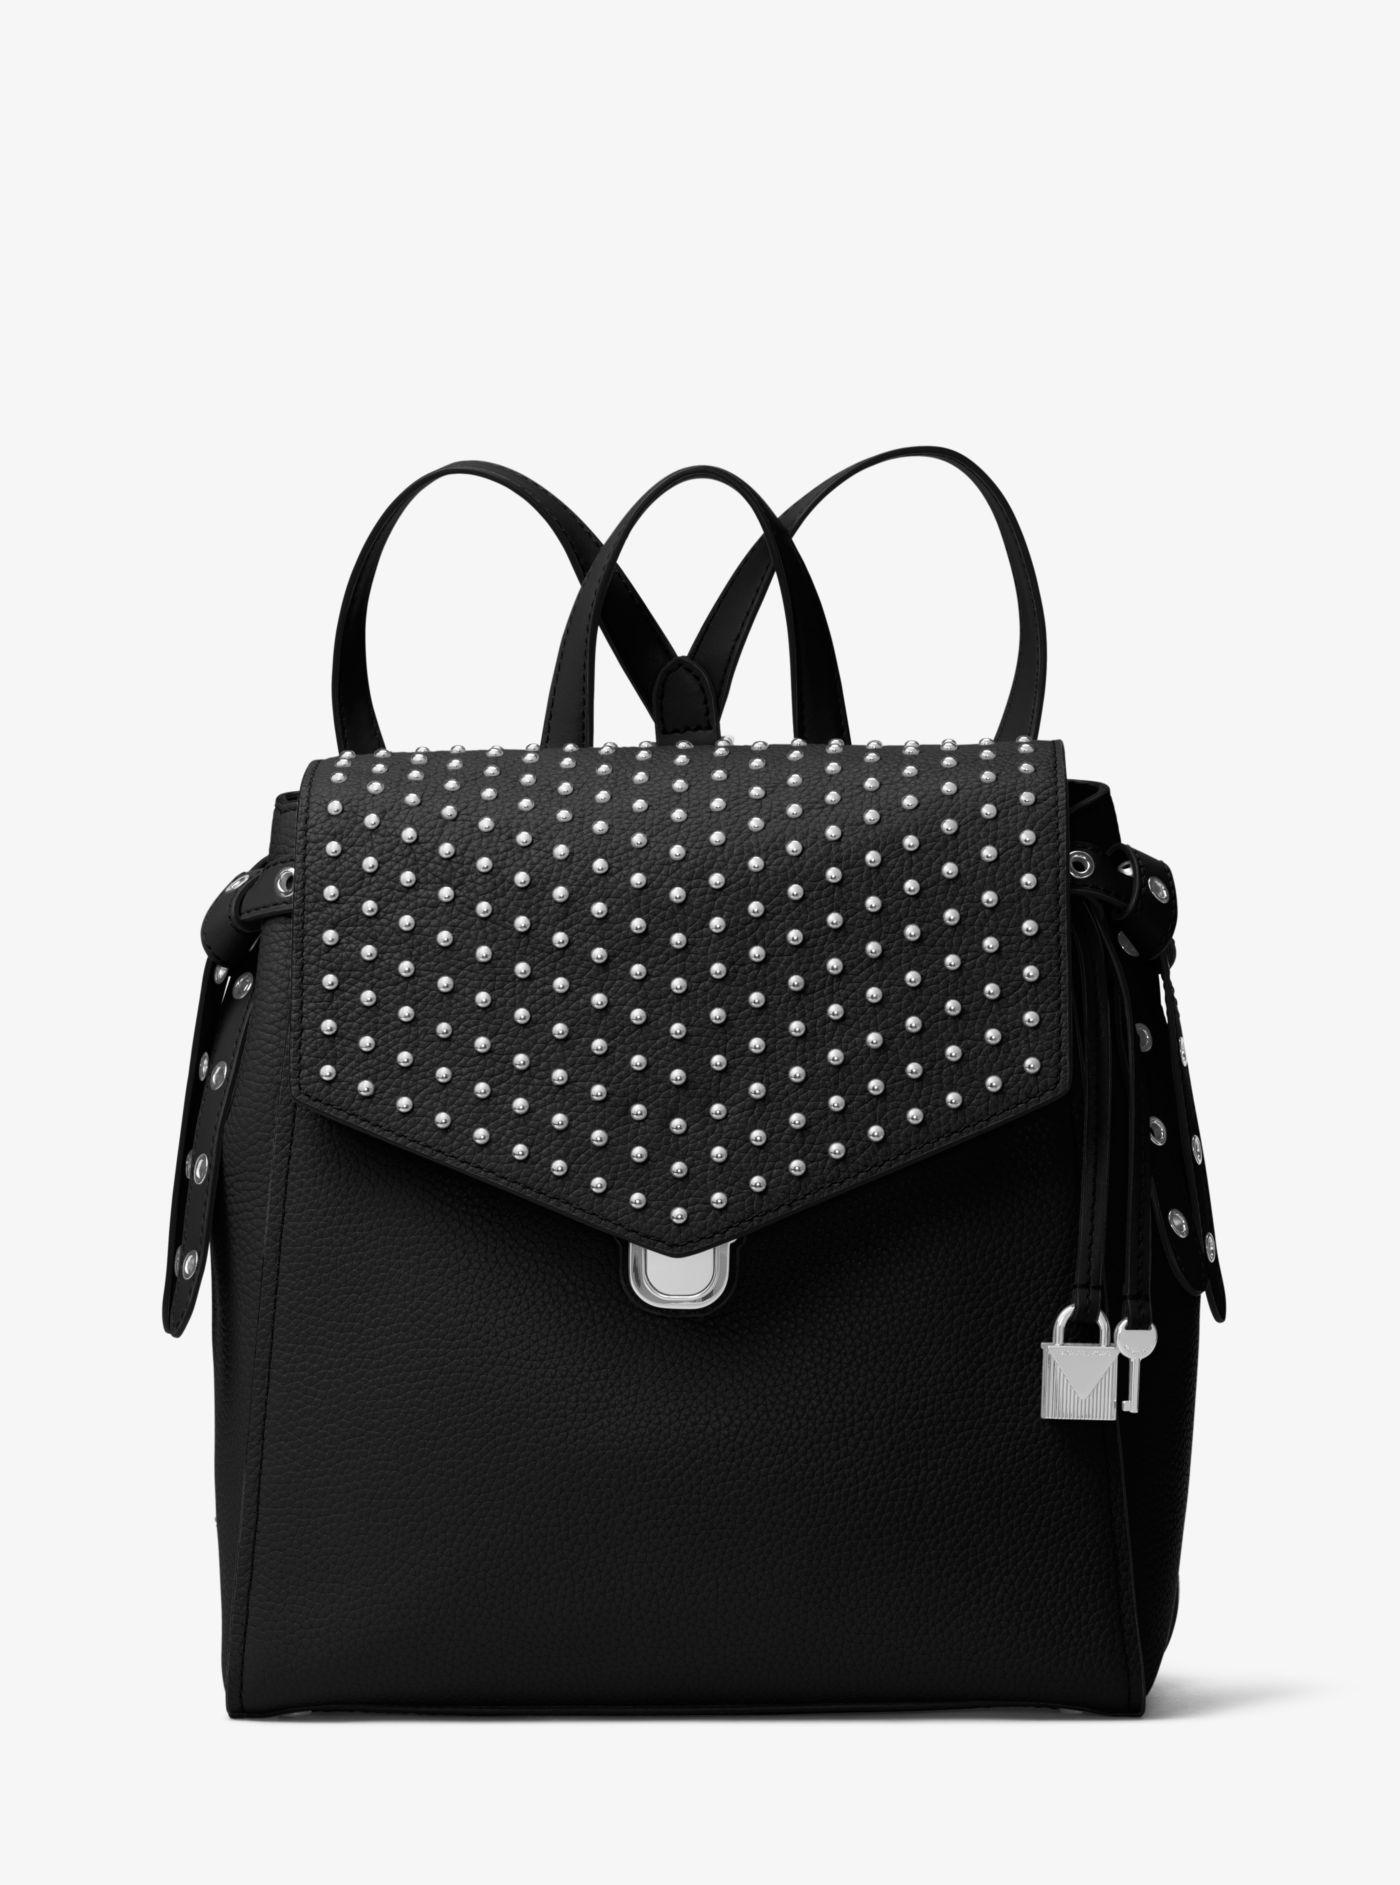 8145d88a623b Michael Kors Bristol Medium Studded Leather Backpack in Black - Lyst